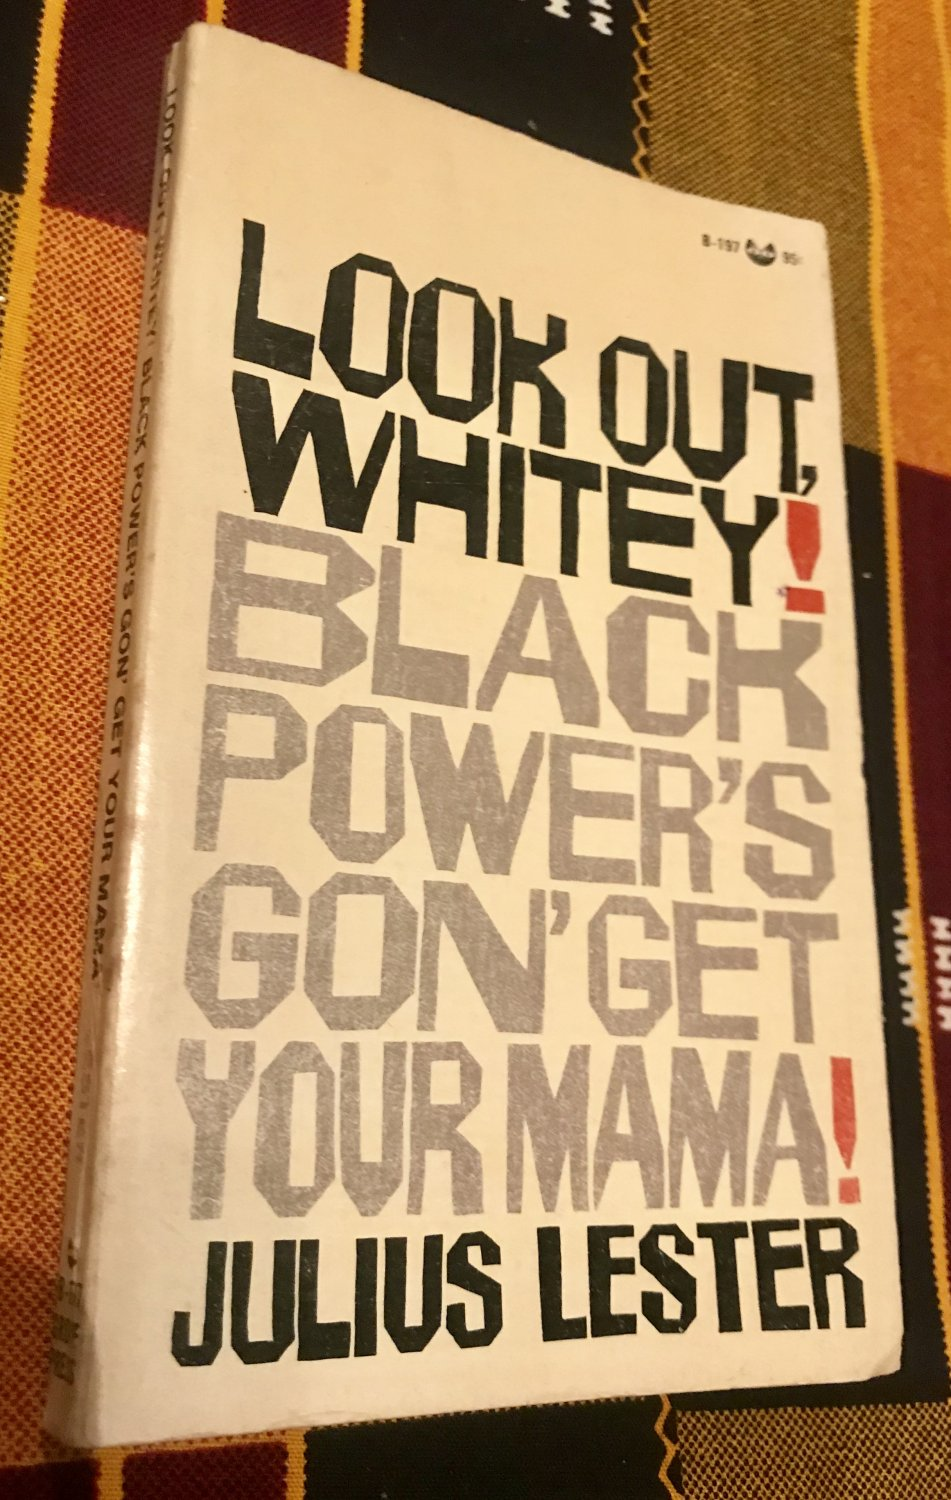 Look Out Whitey! Black Power's Gon' Get Your Mama Paperback � 1968 by Julius Lester